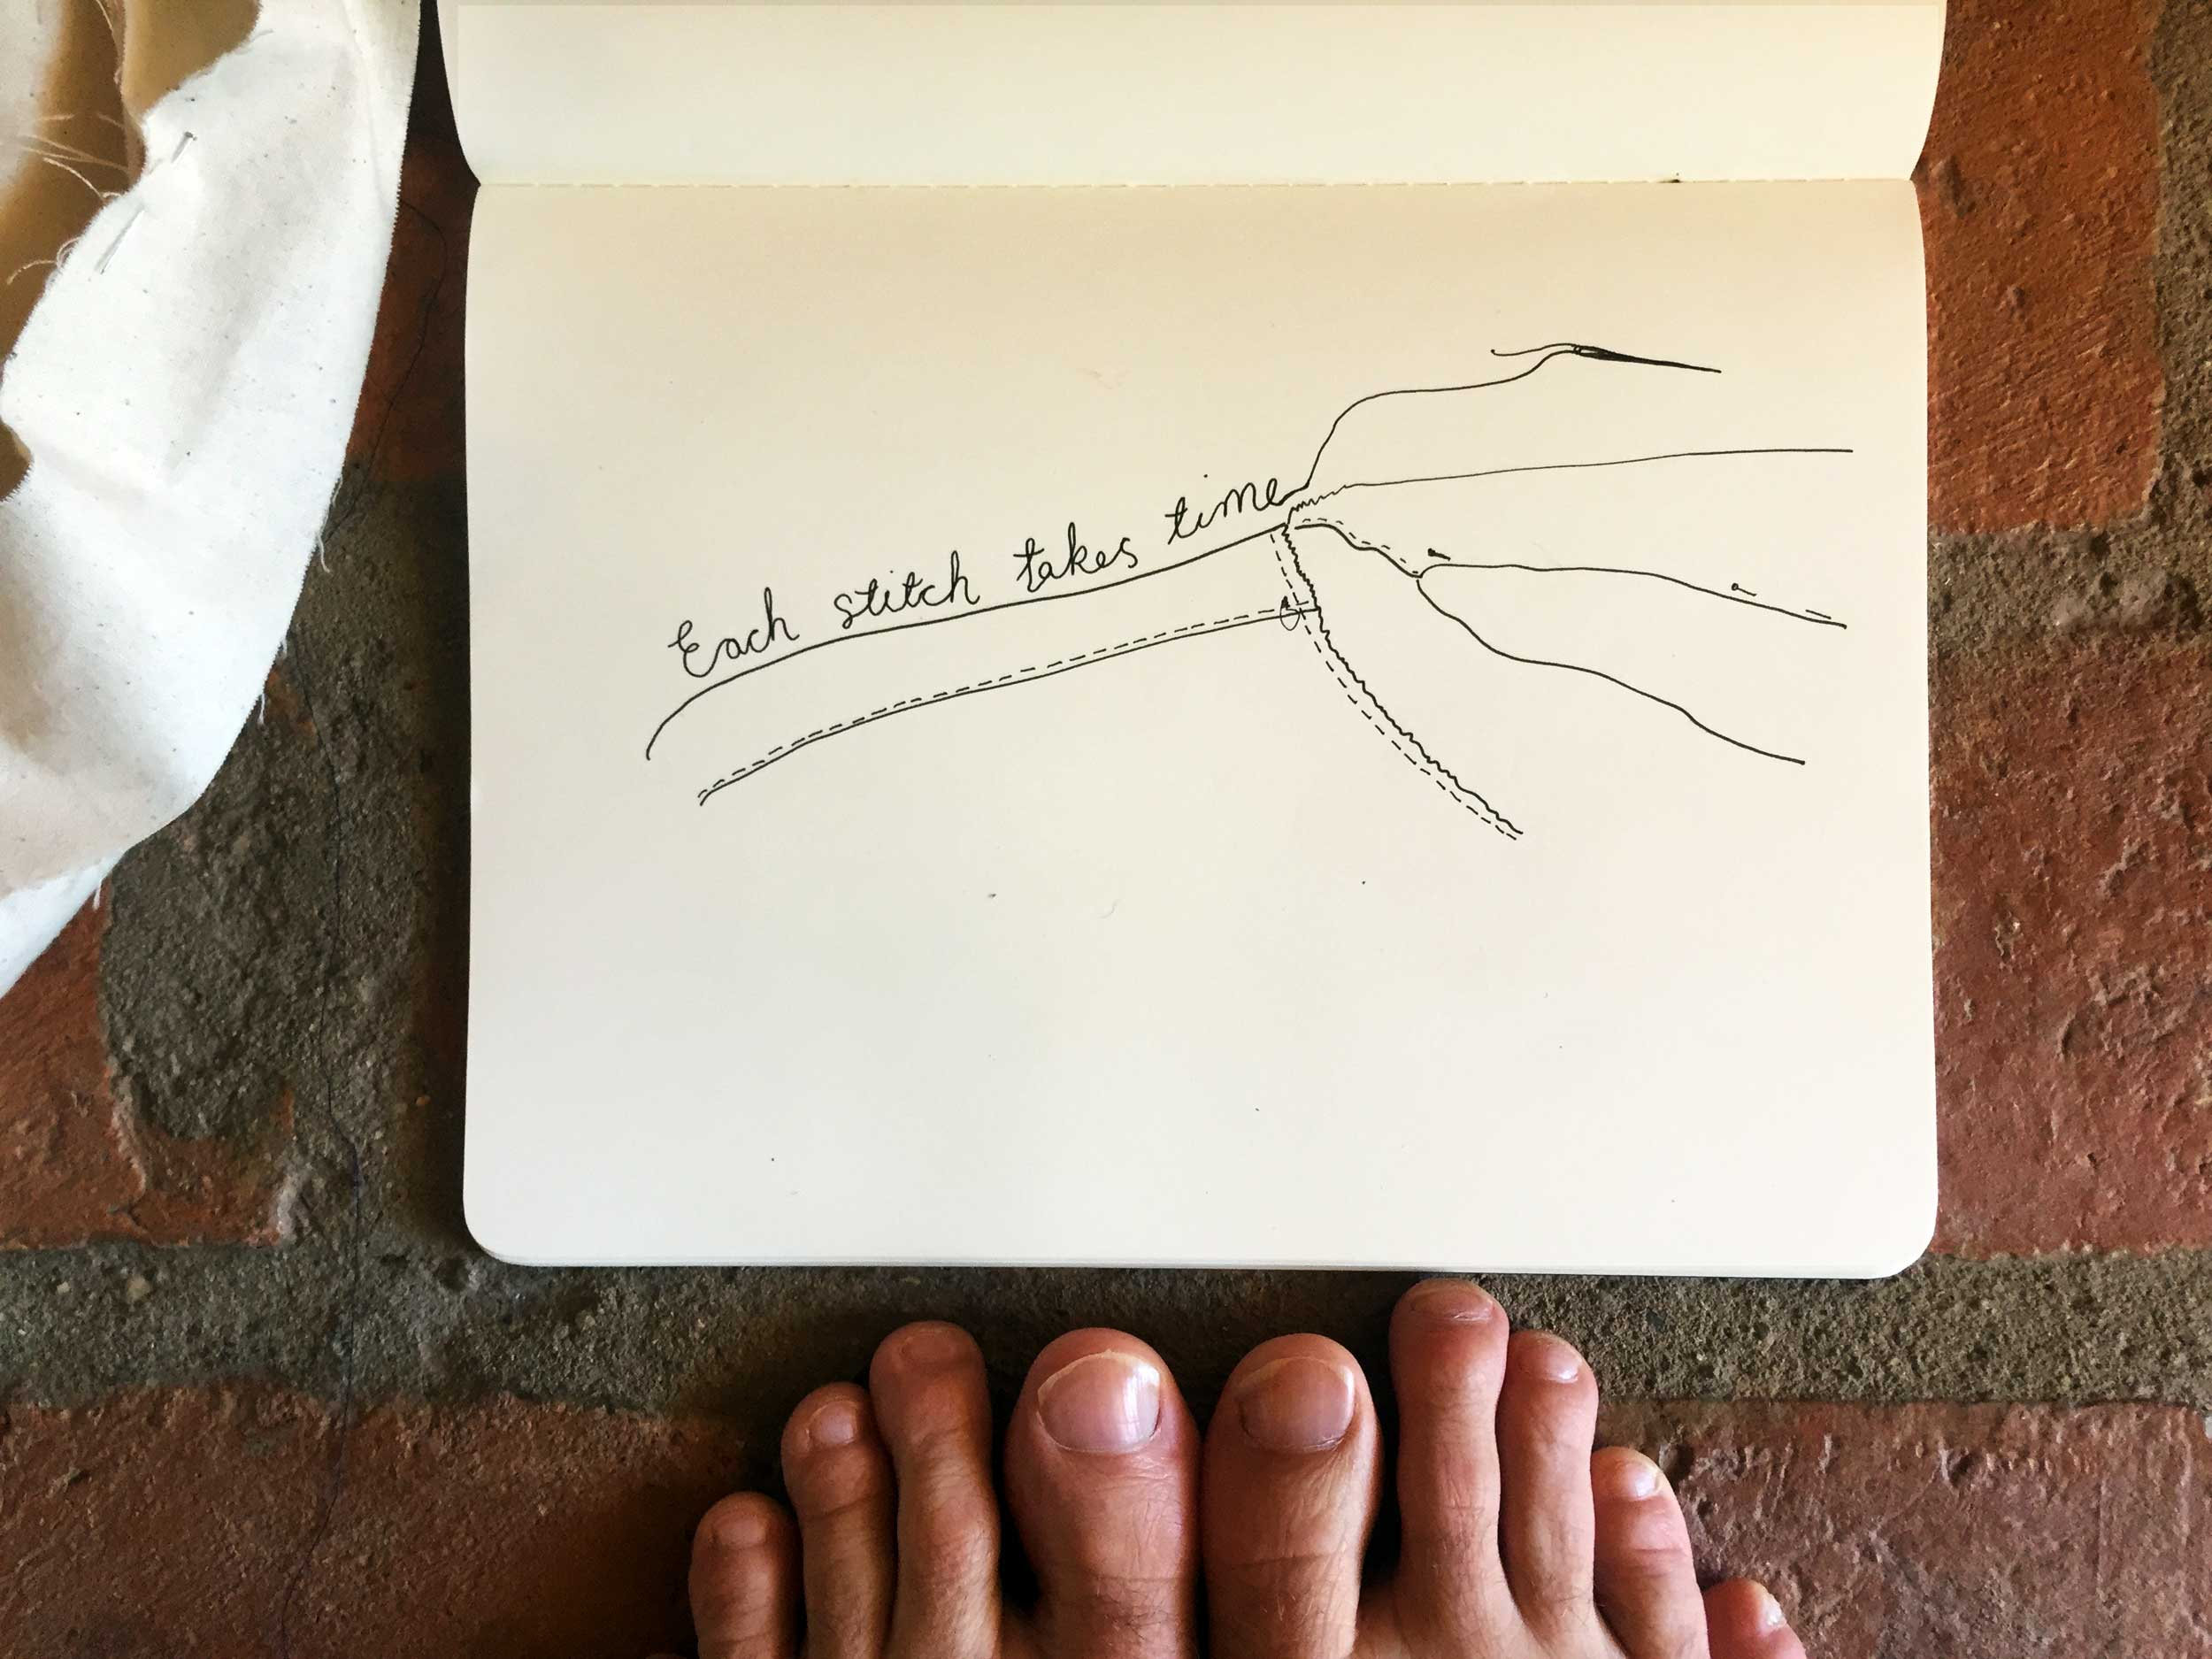 Each stitch takes time. Drawing Luke Hockley.